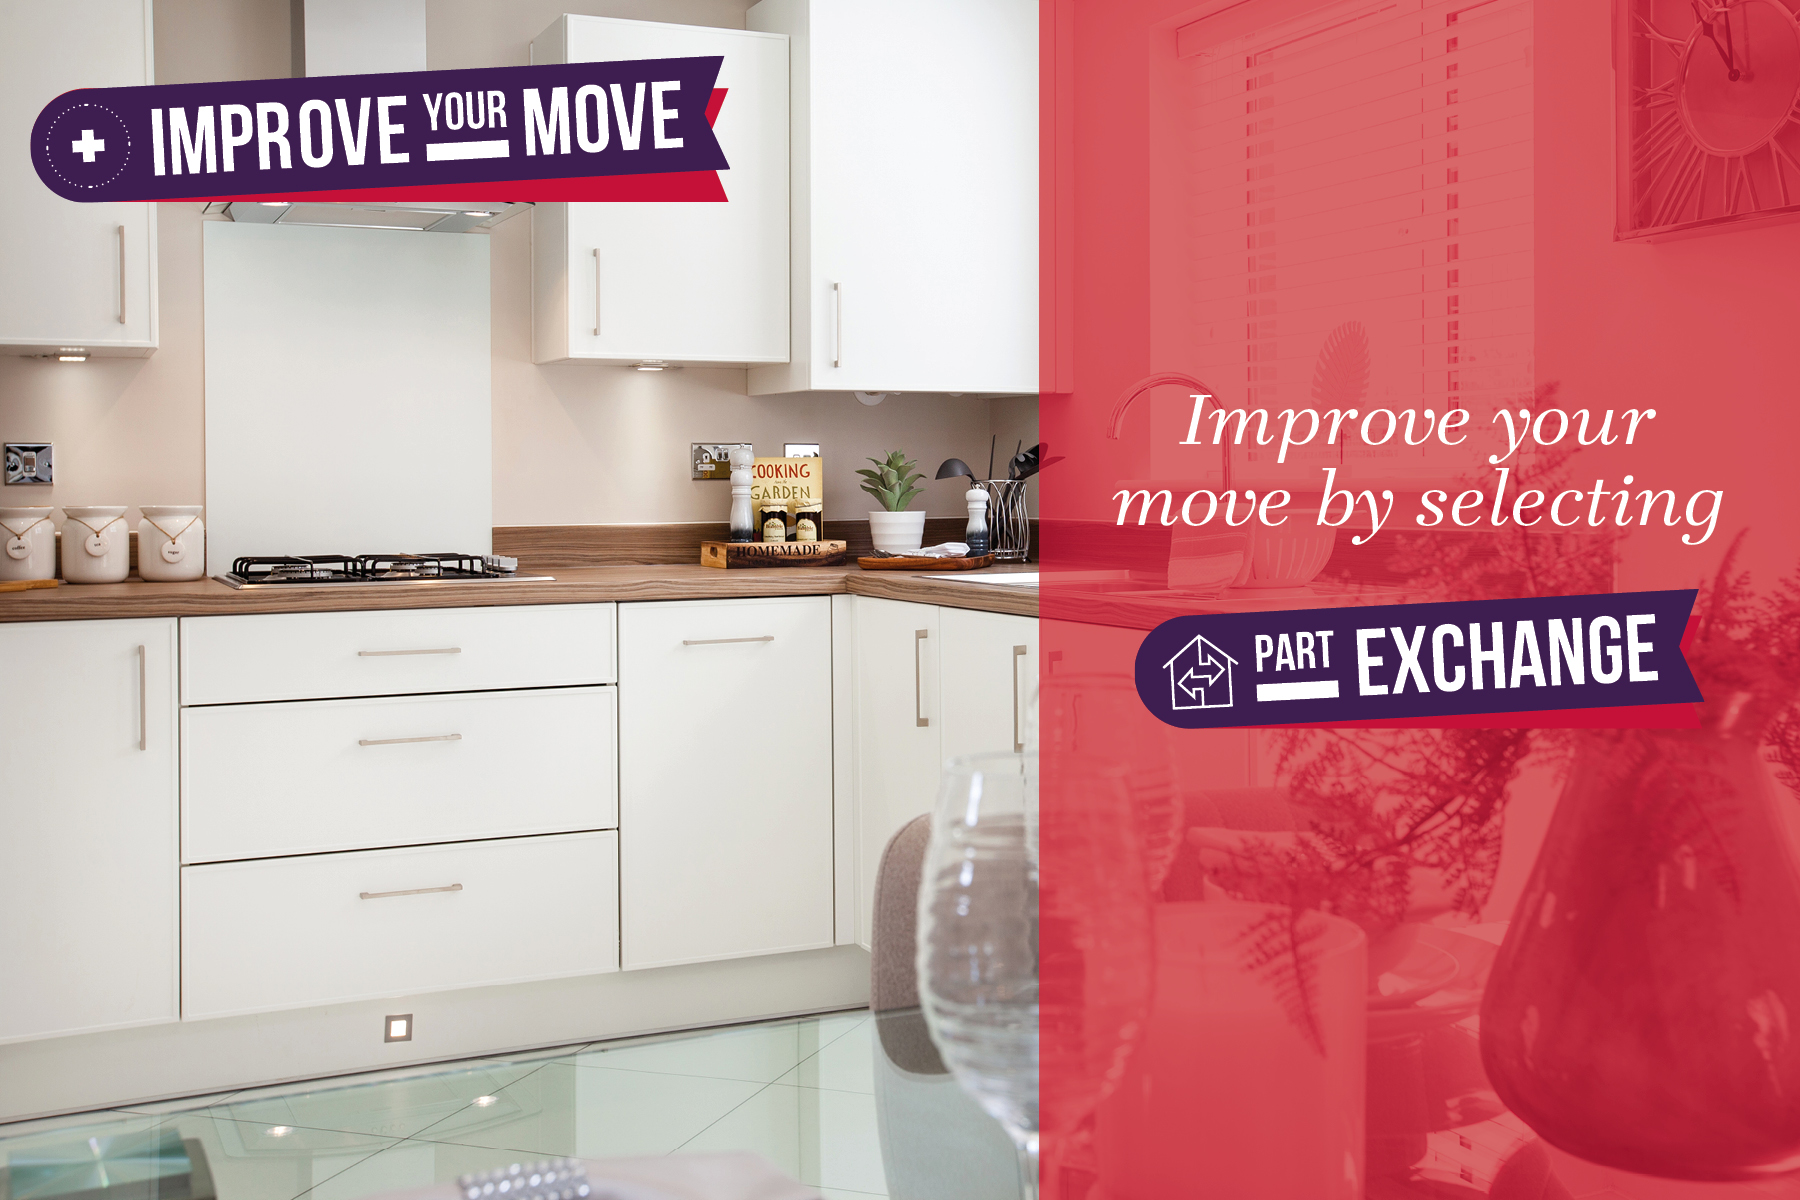 57361_TWY - PX IMPROVE YOUR MOVE_1800x1200